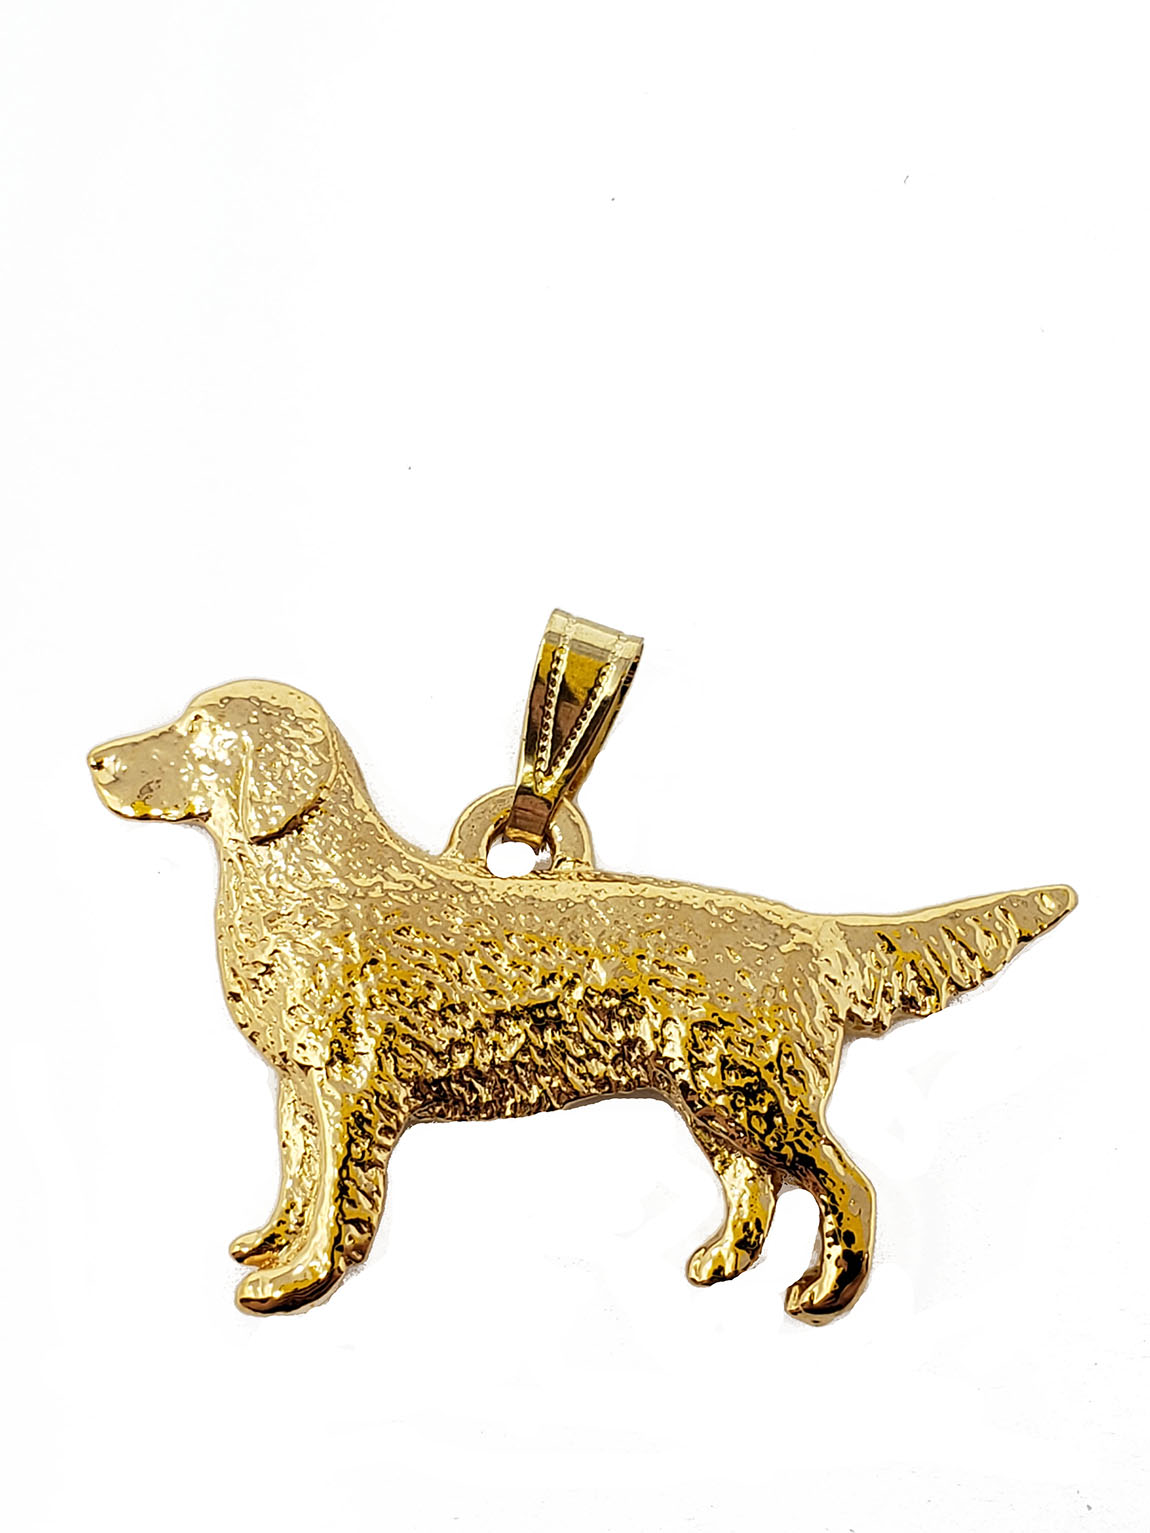 Golden Retriever 24K Gold Plated Pendant